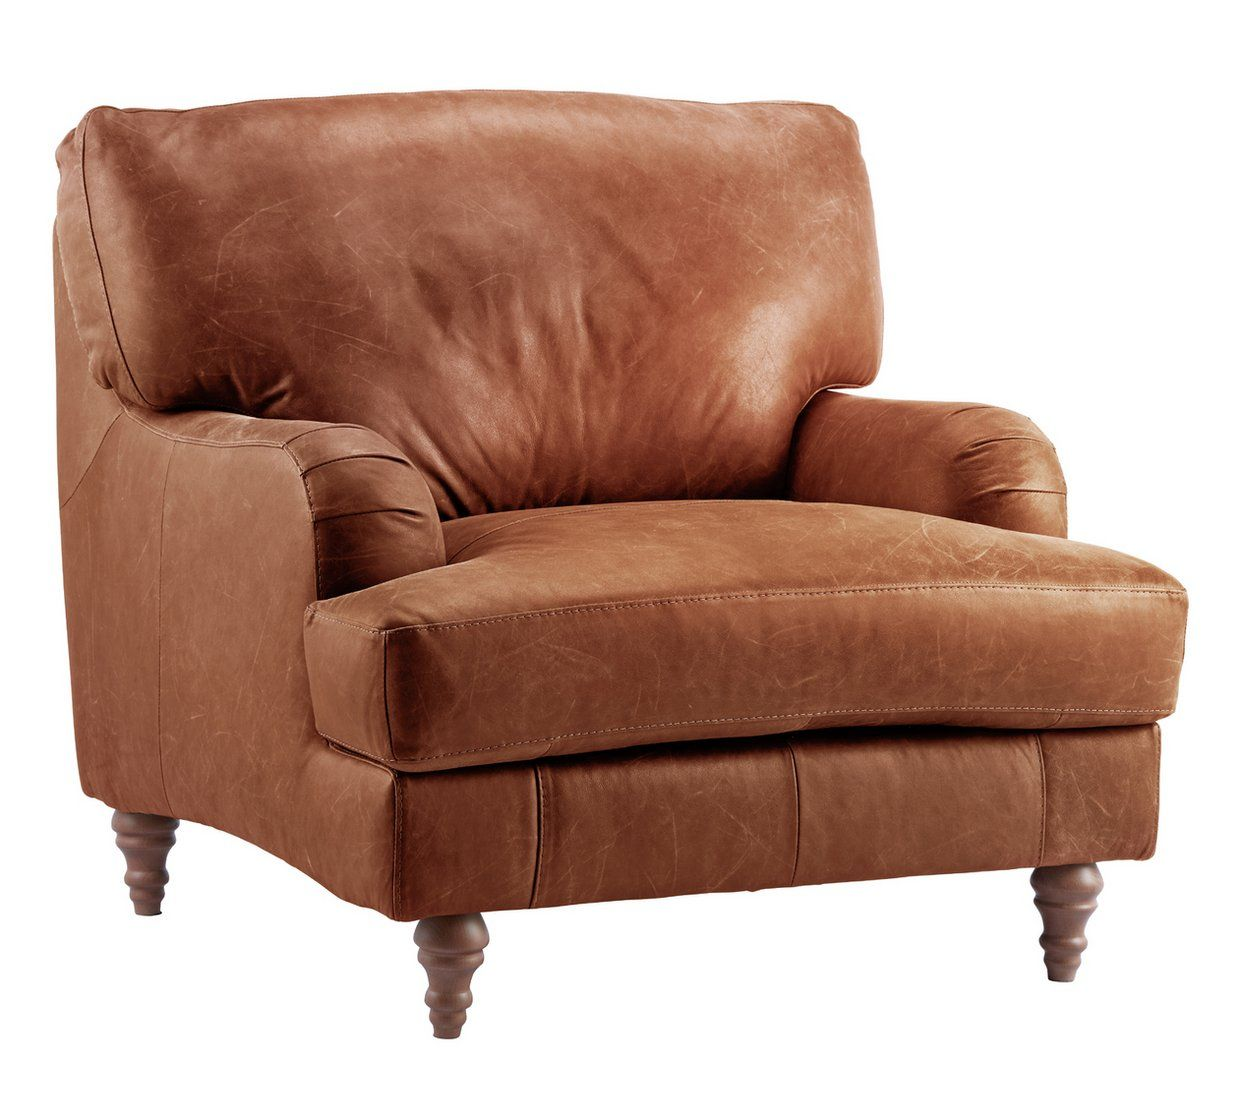 Buy Argos Home Livingston Leather Armchair Tan Armchairs And